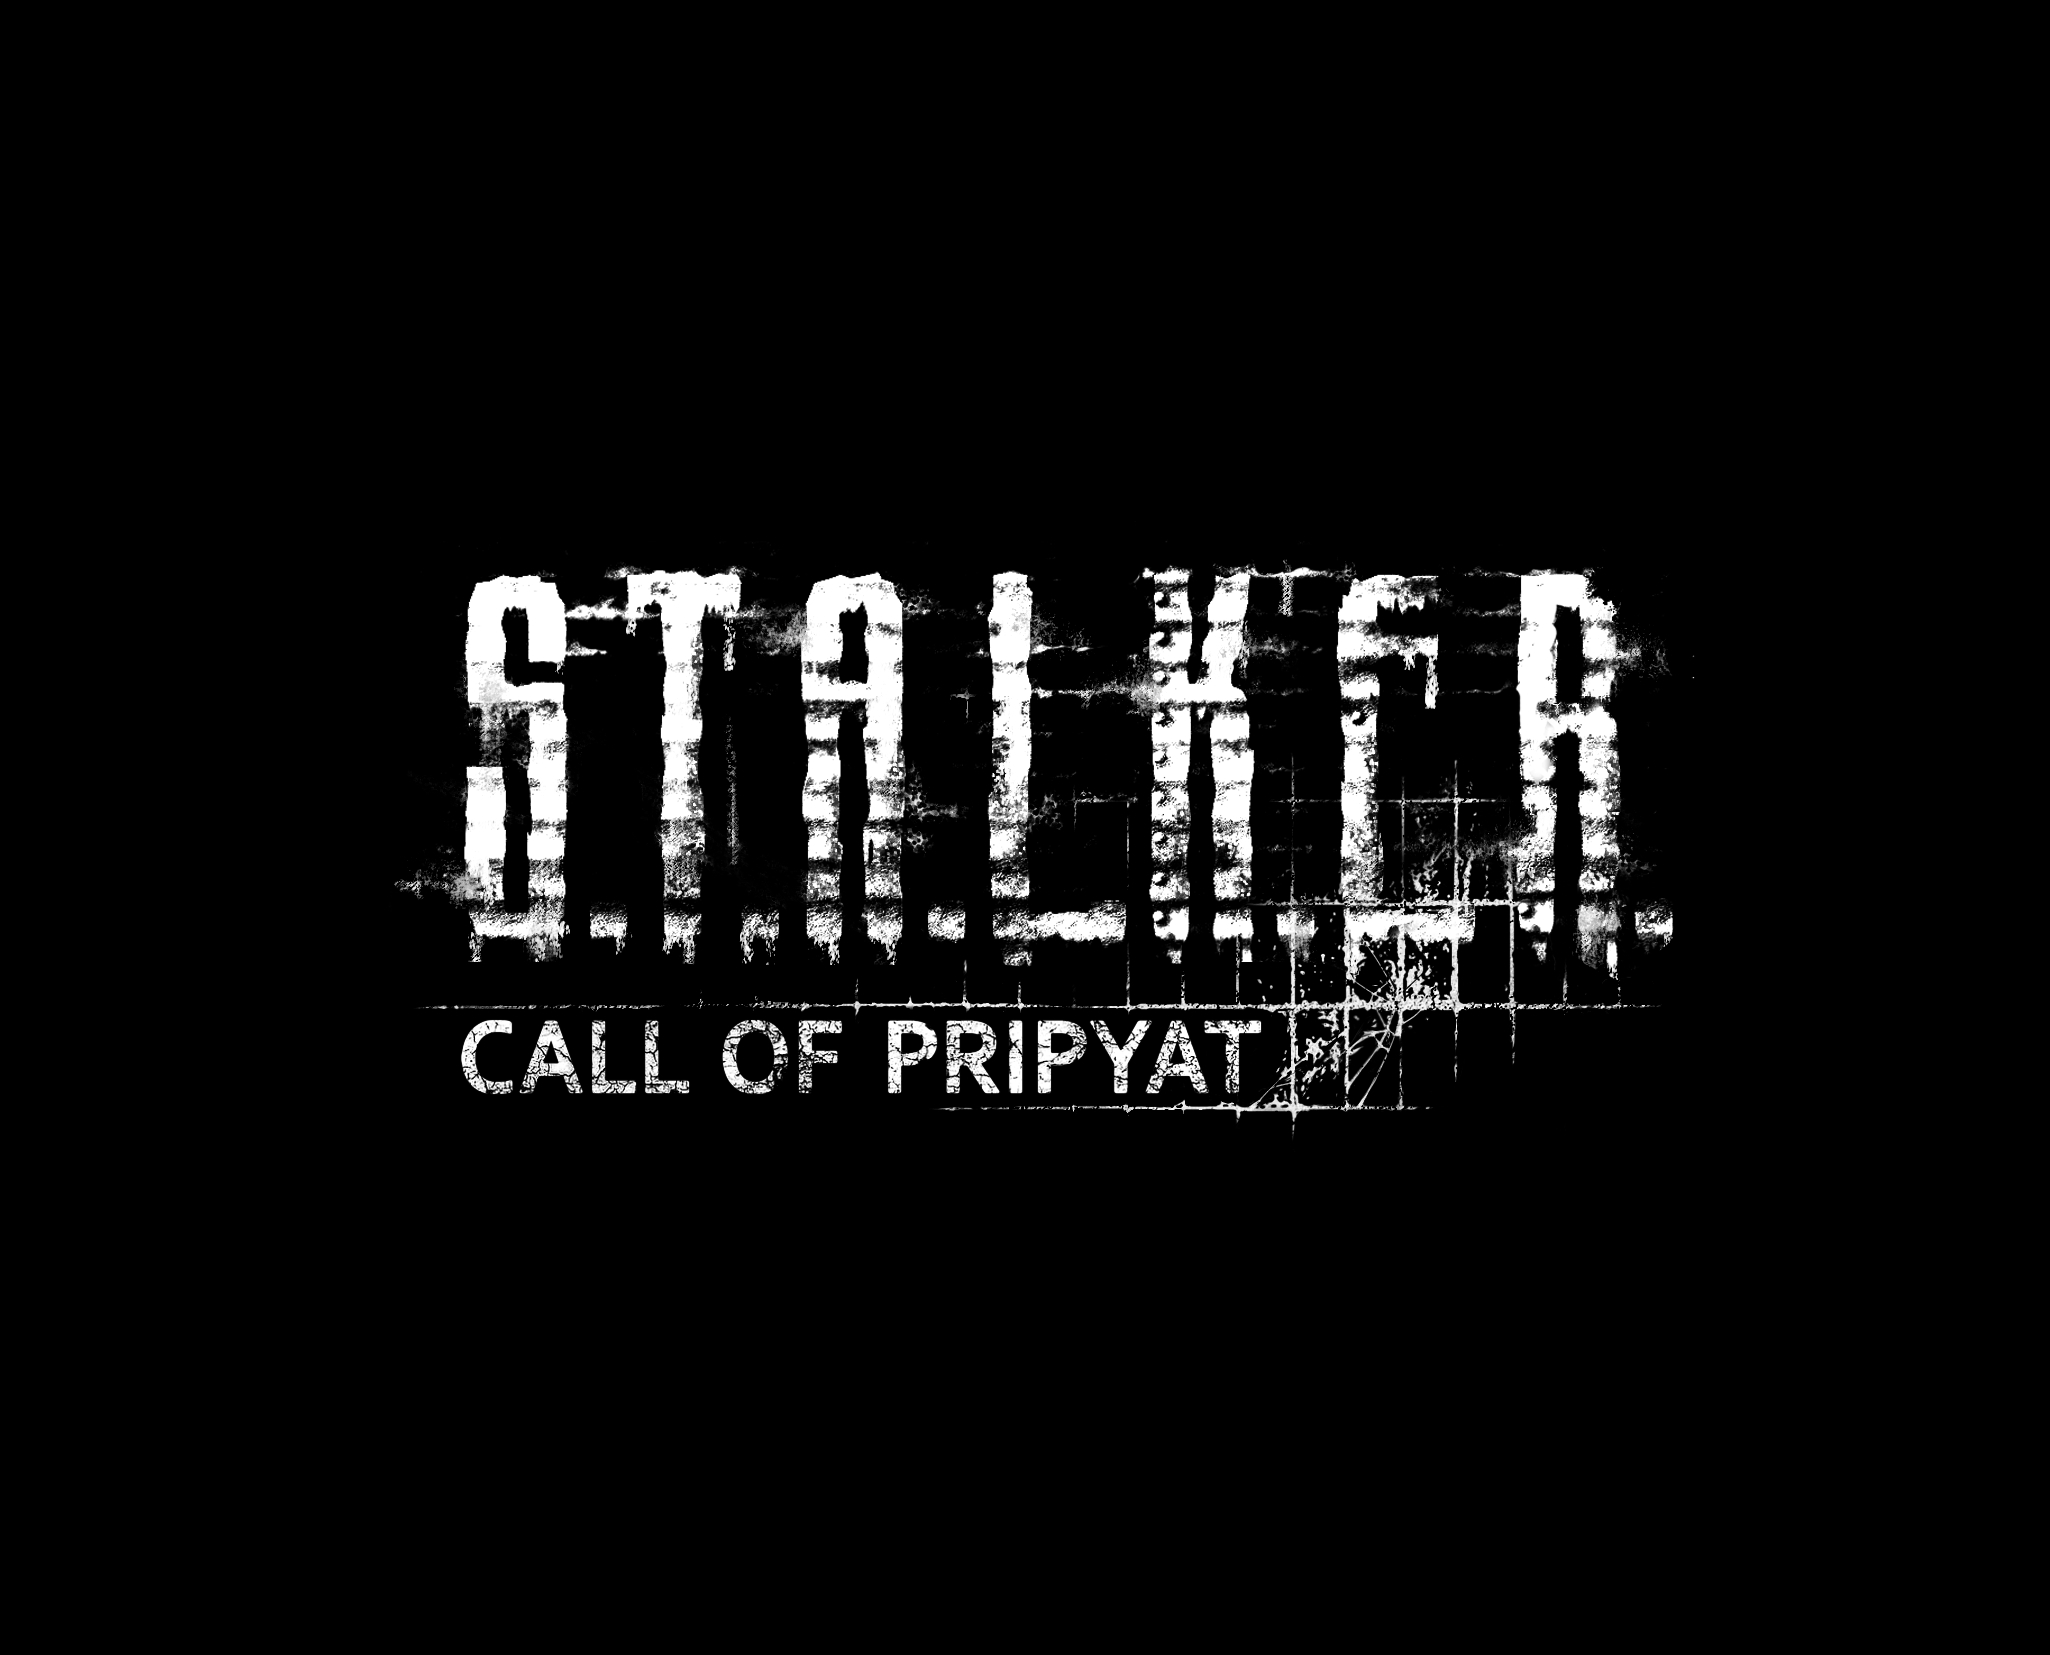 S.T.A.L.K.ER. Call of Pripyat STALKER CoP BitComposer Games